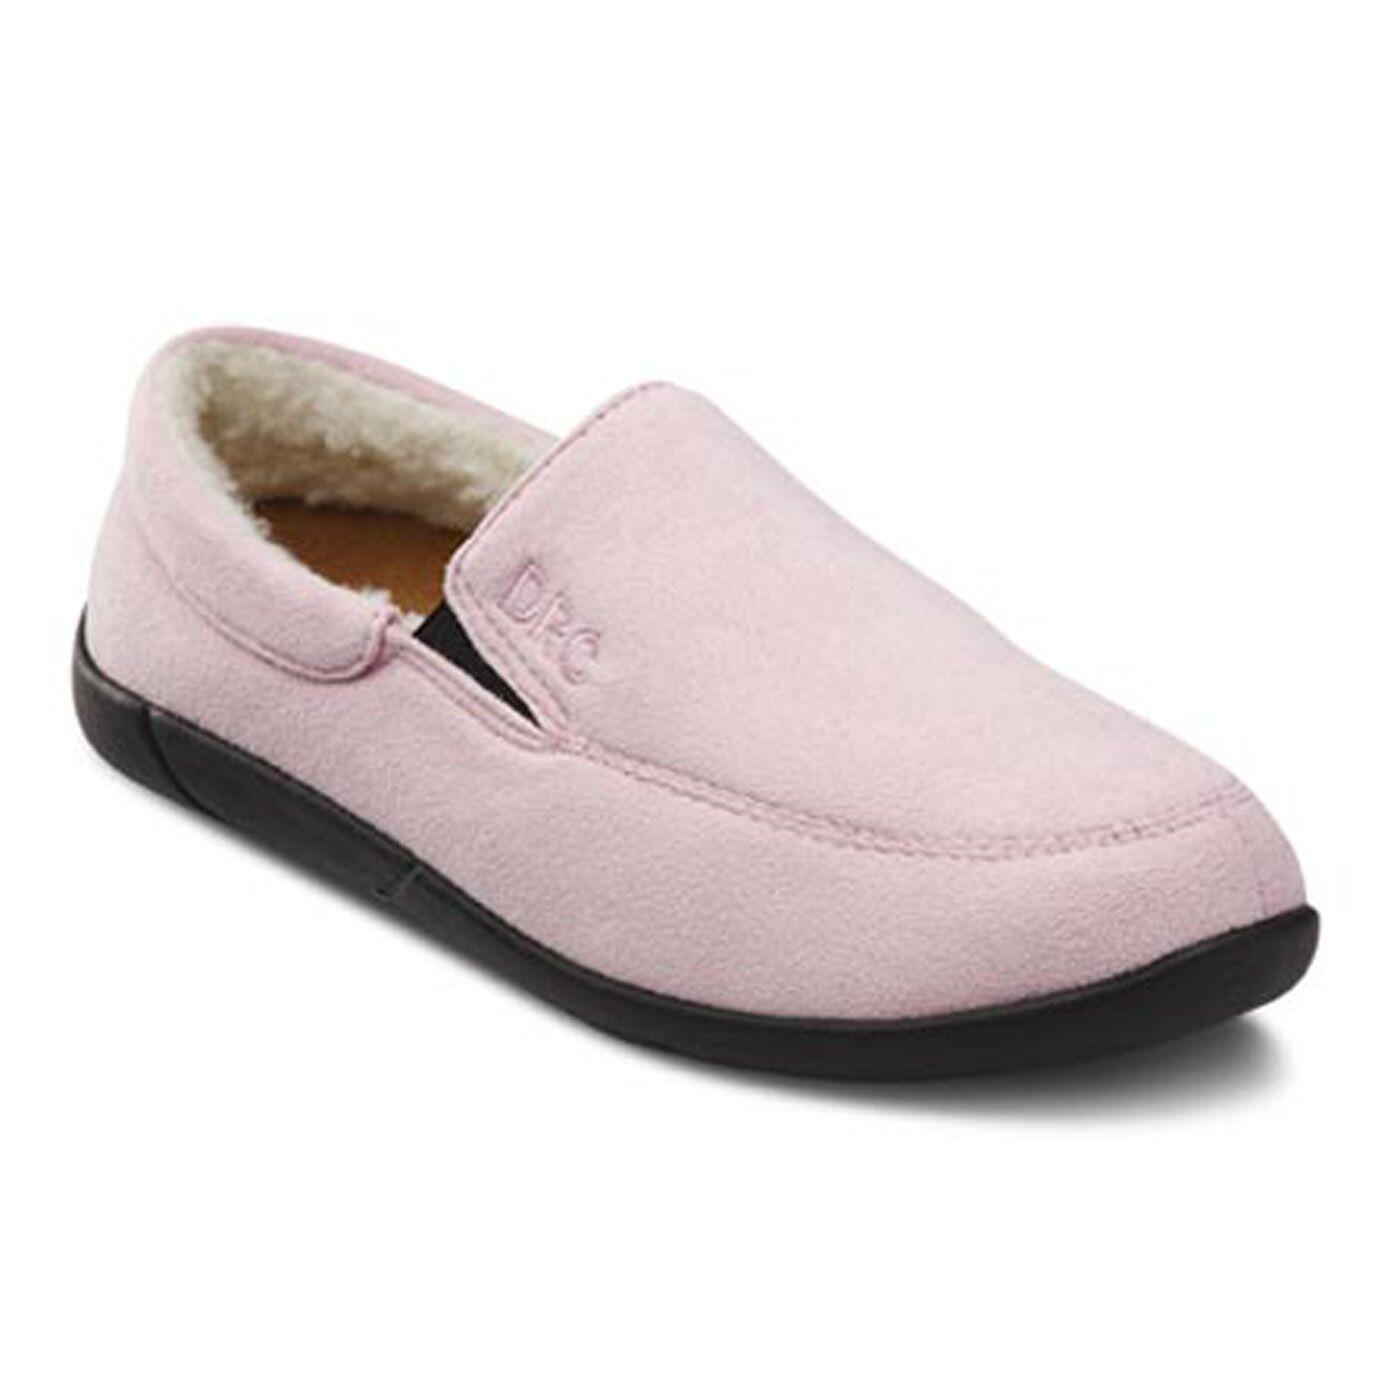 Dr Comfort Cuddle Slippers for Women